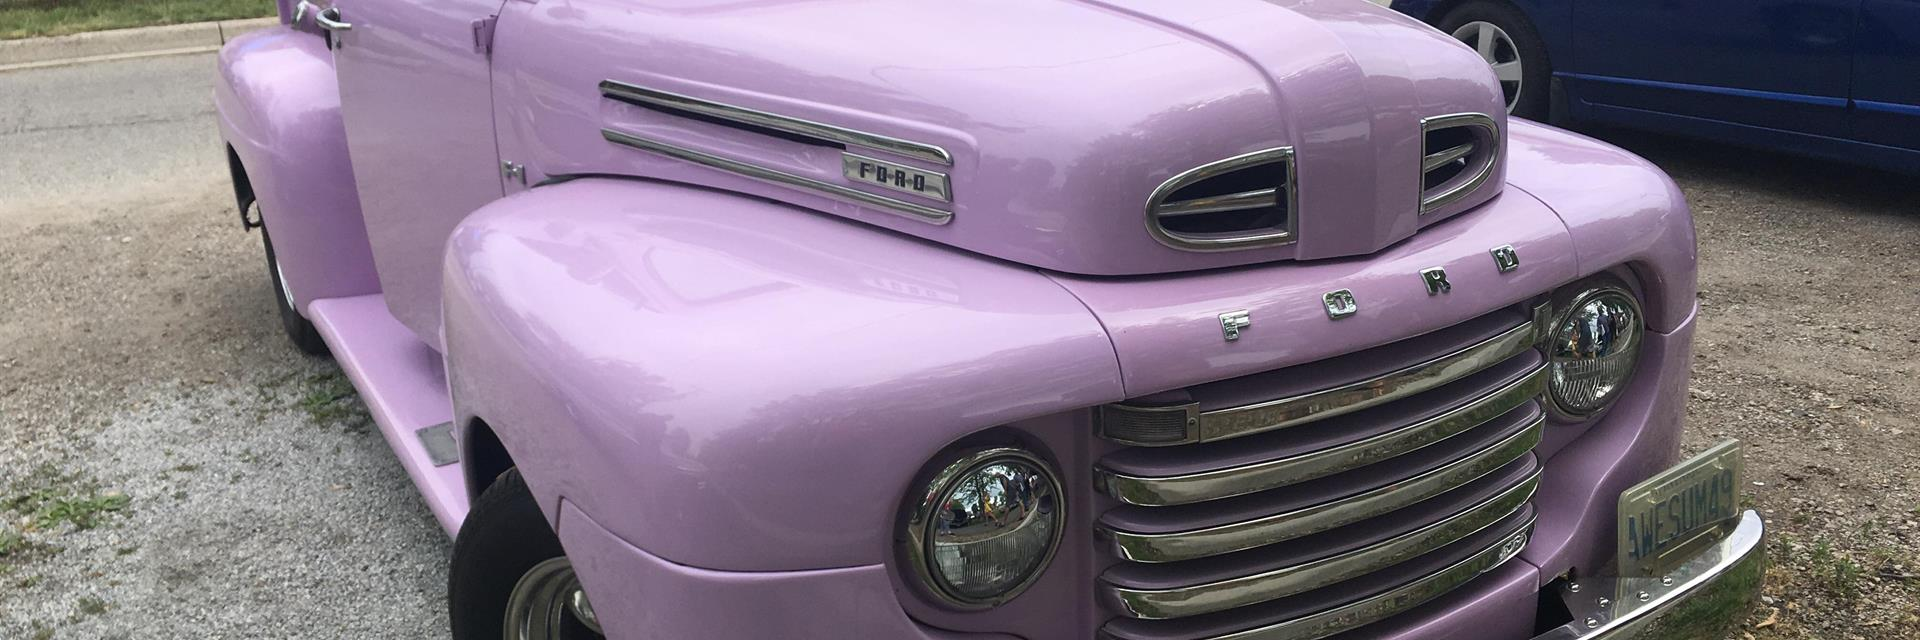 a purlple classic truck parked on the grass at a car show in chatham-kent